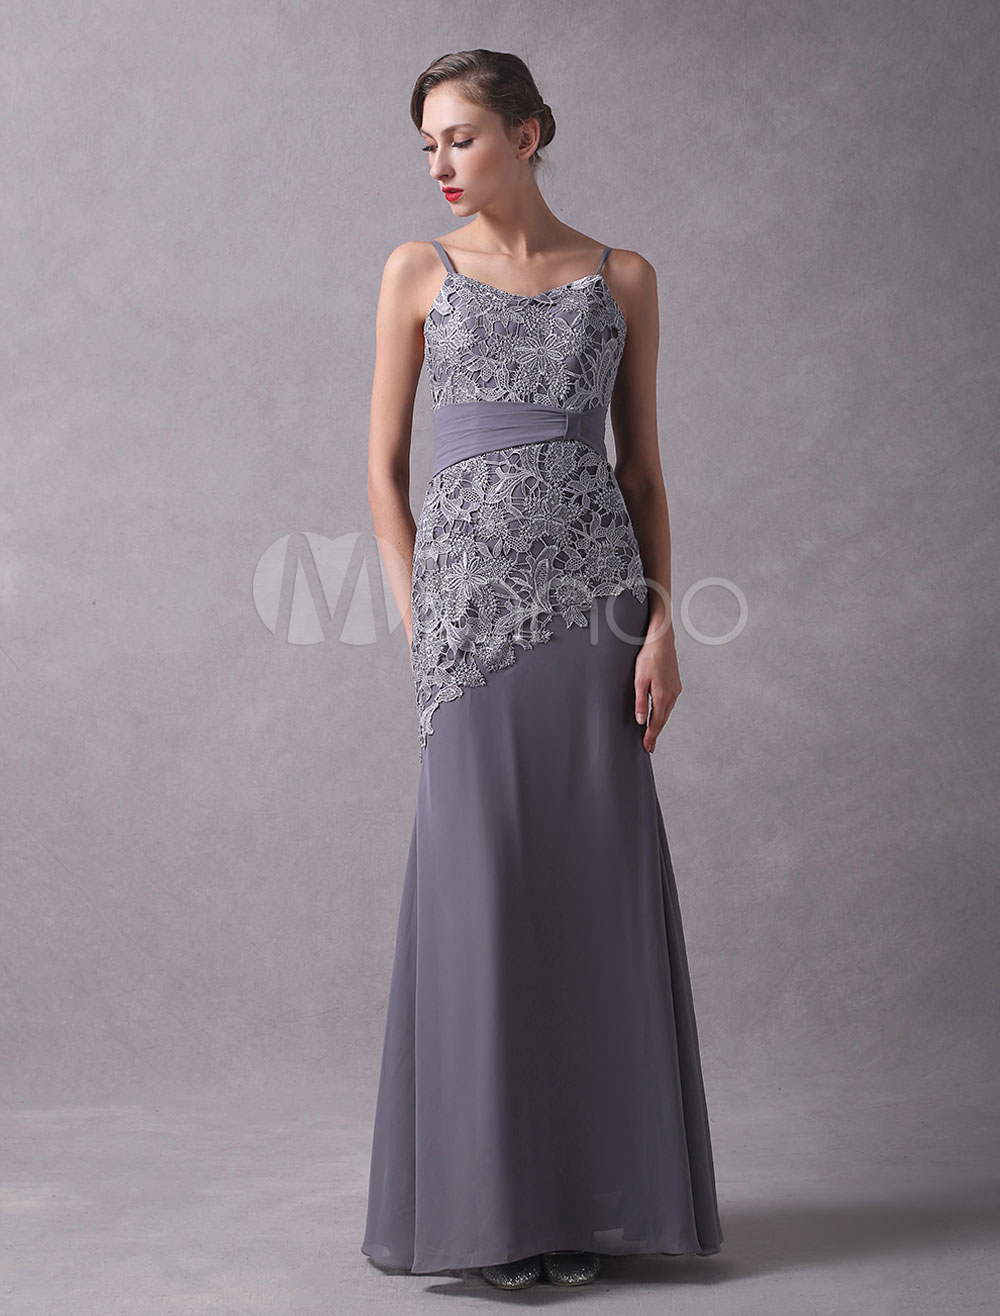 Wedding Guest Dresses Grey Two Piece Mother Of The Bride Dress Lace Chiffon Straps Floor Length Wedding Party Dress With Jacket